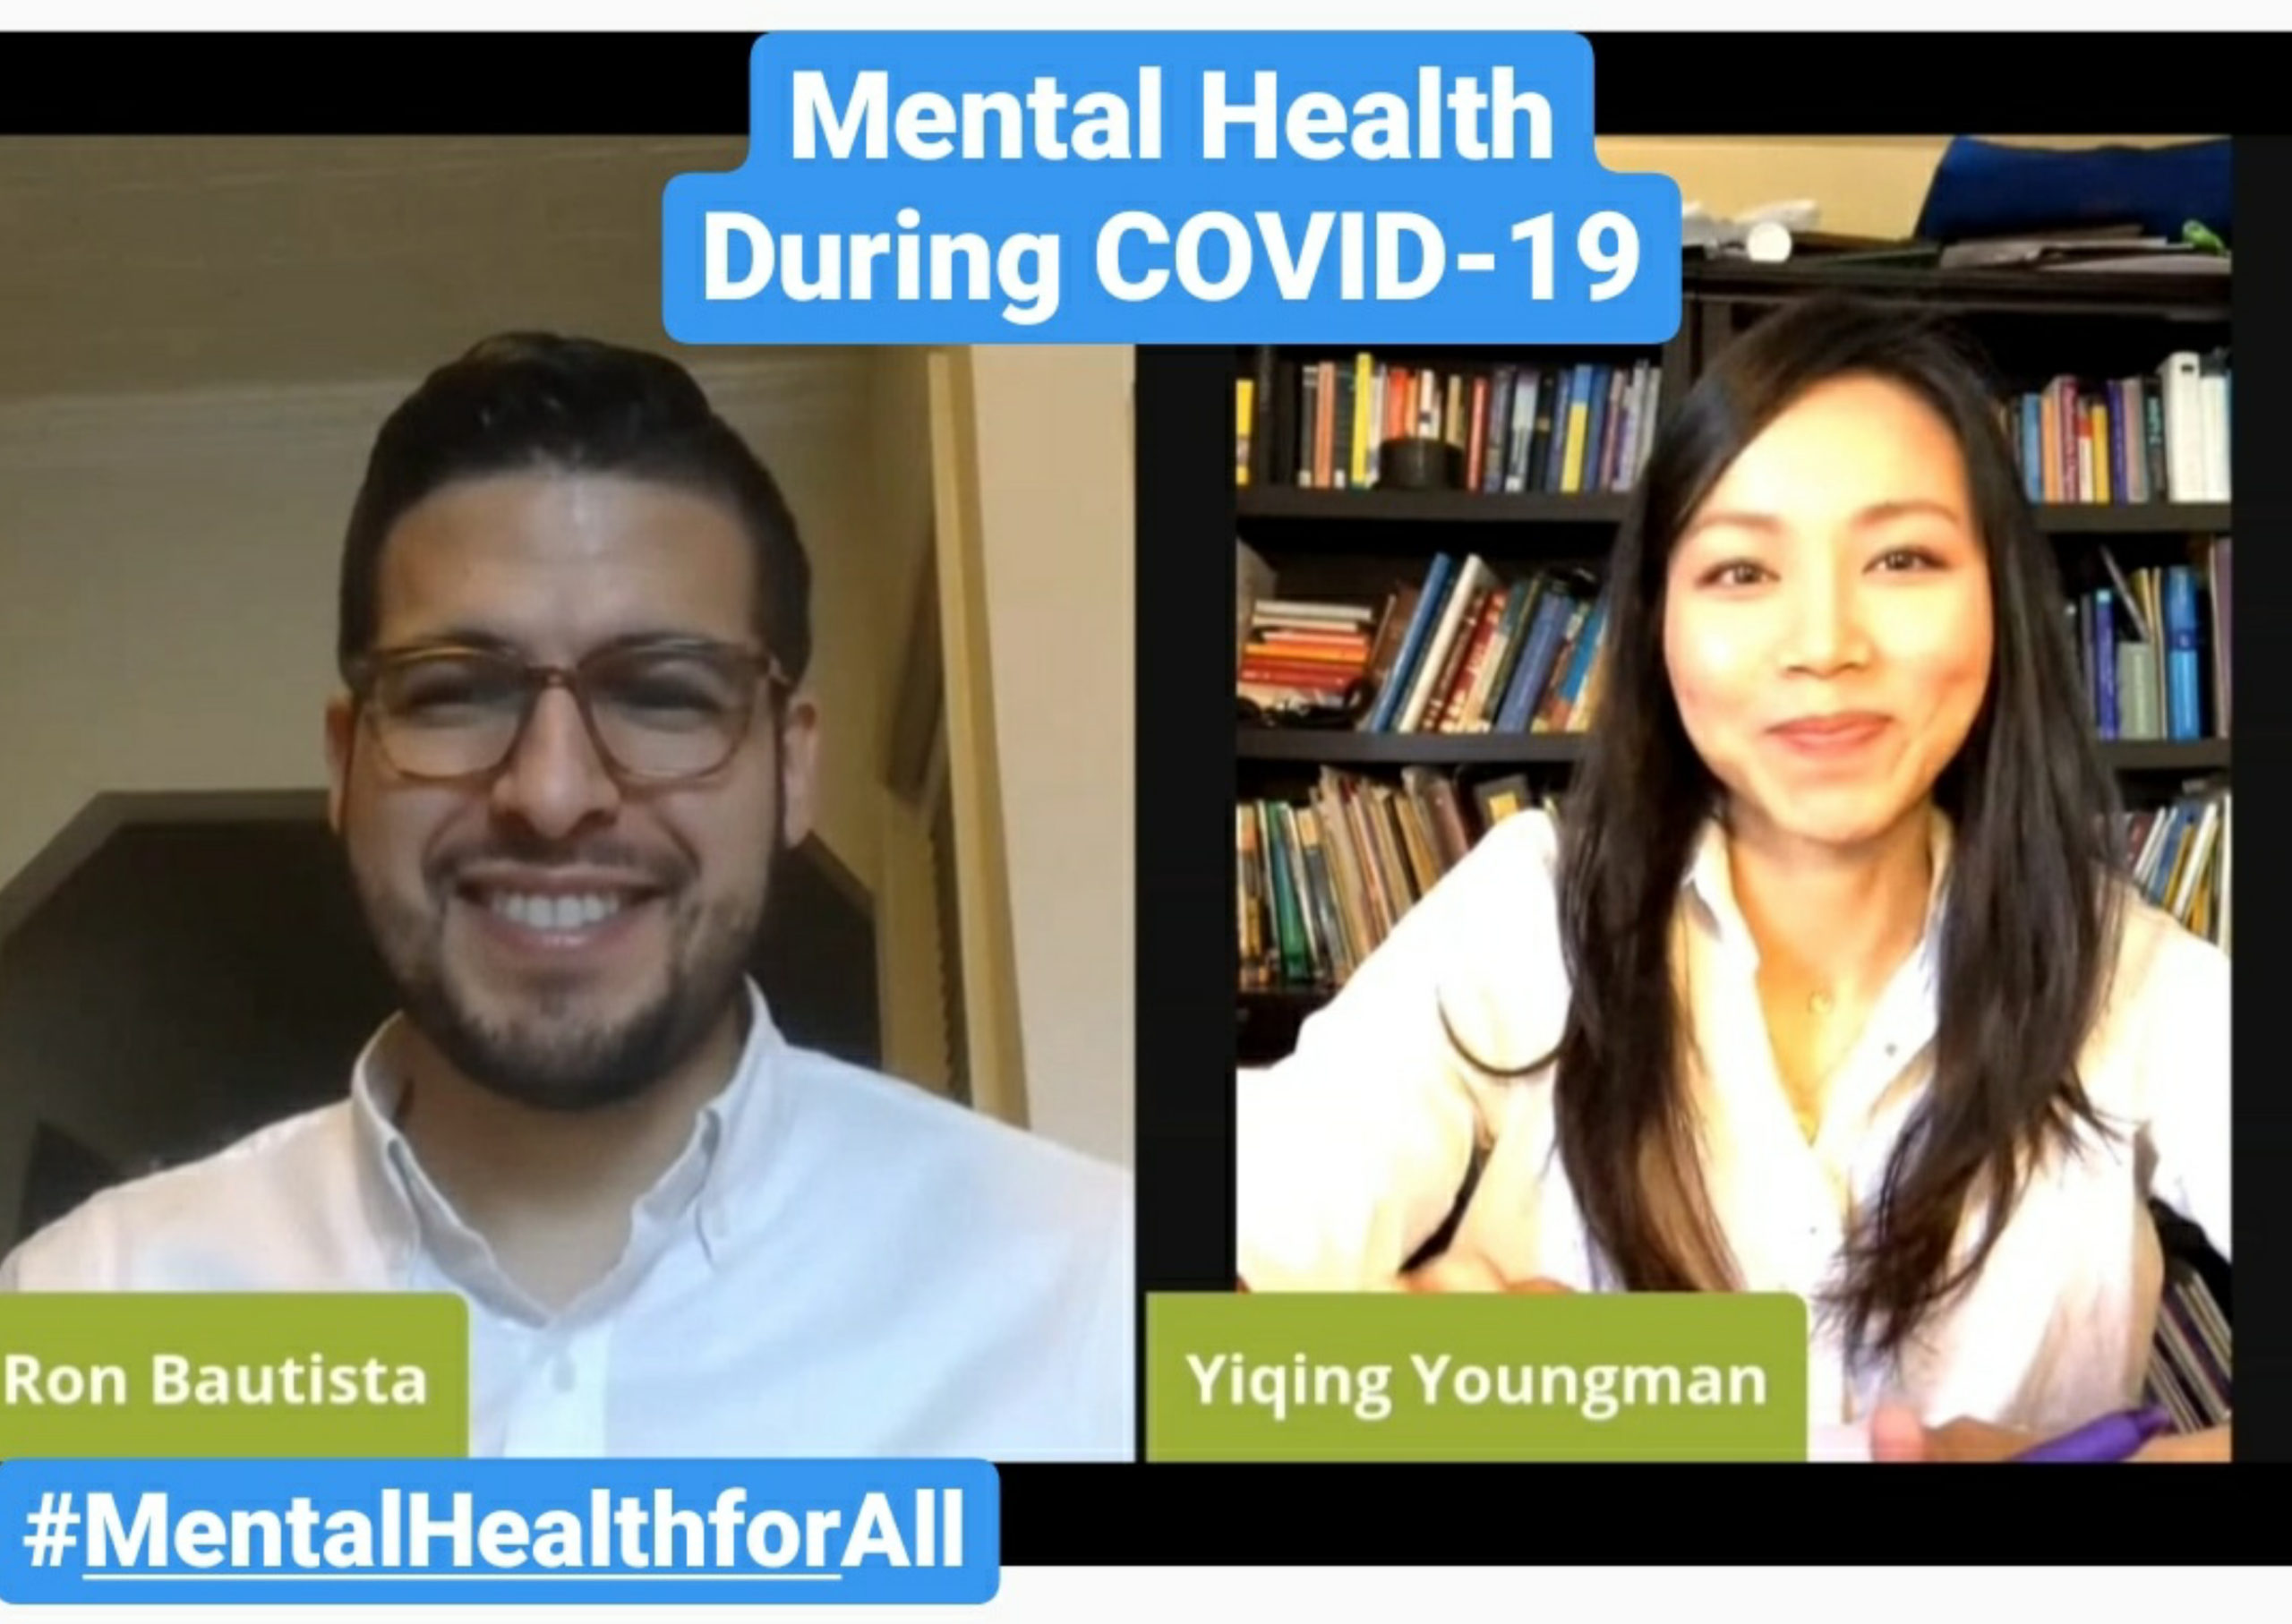 Tackle COVID-19 Mental Health Crisis - Mental Health for All